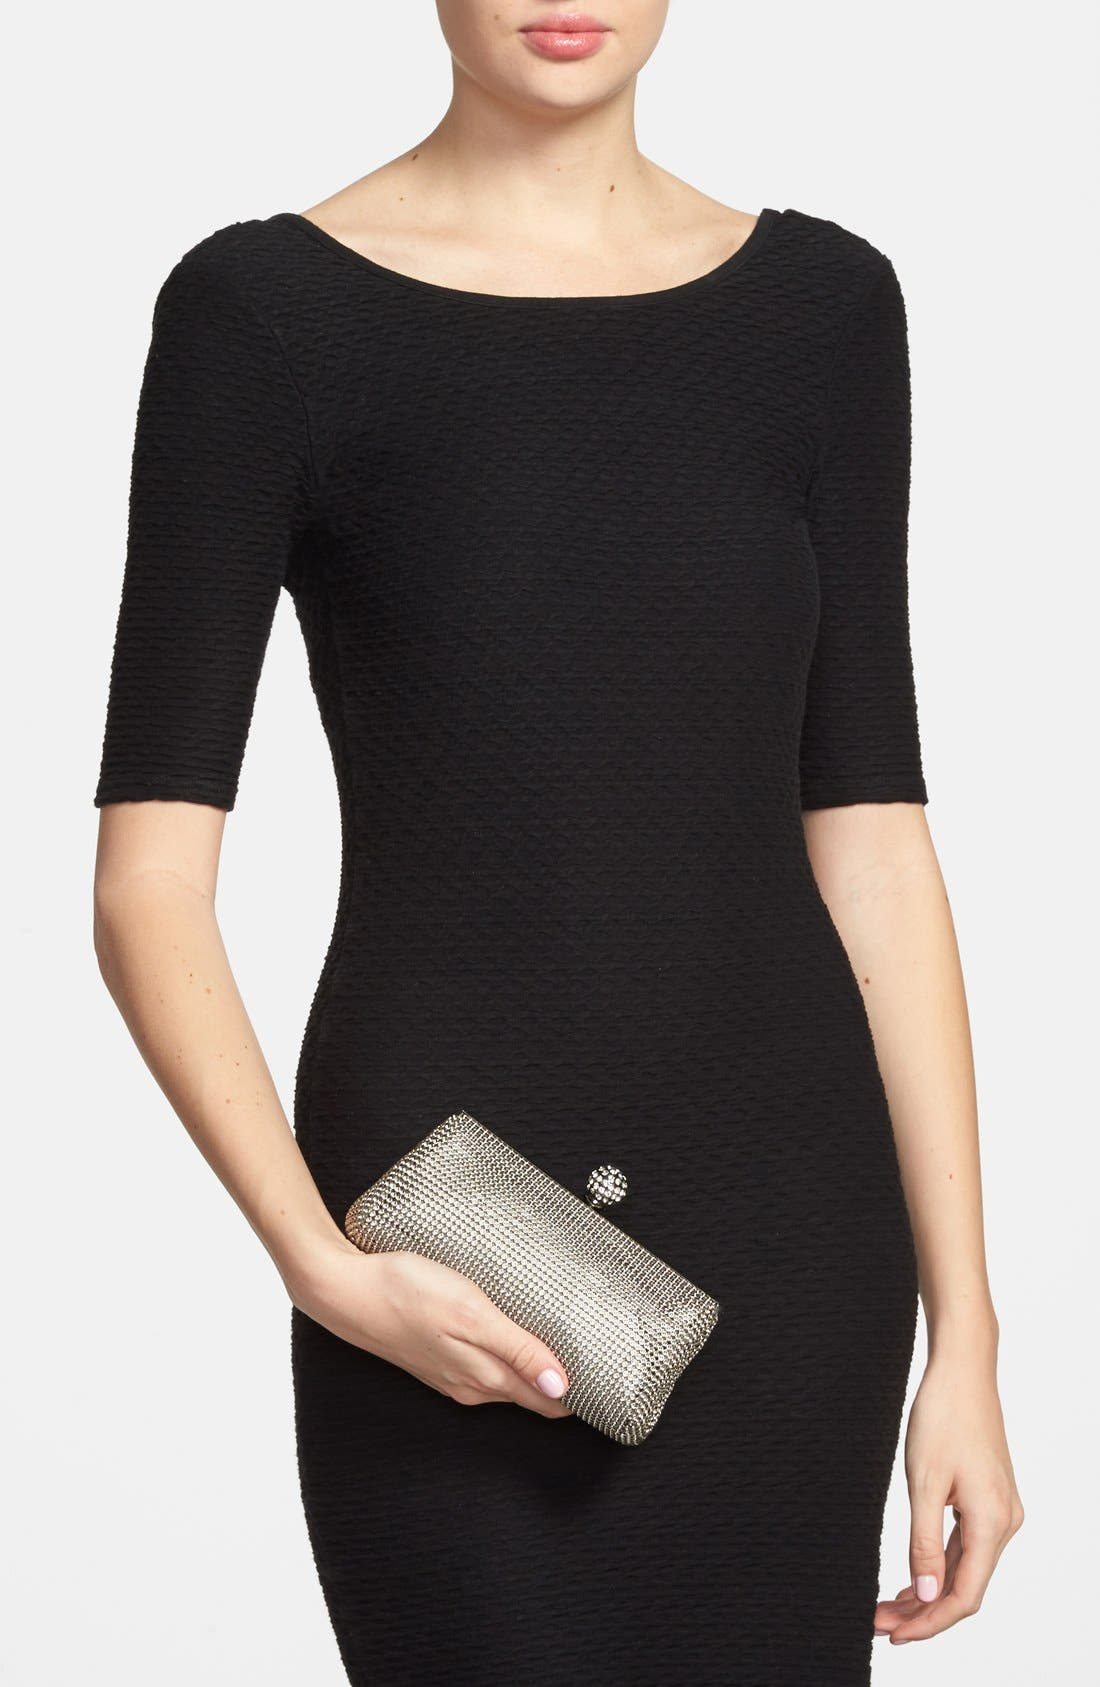 WHITING & DAVIS,                             'Crystal' Mesh Clutch,                             Alternate thumbnail 4, color,                             PEWTER